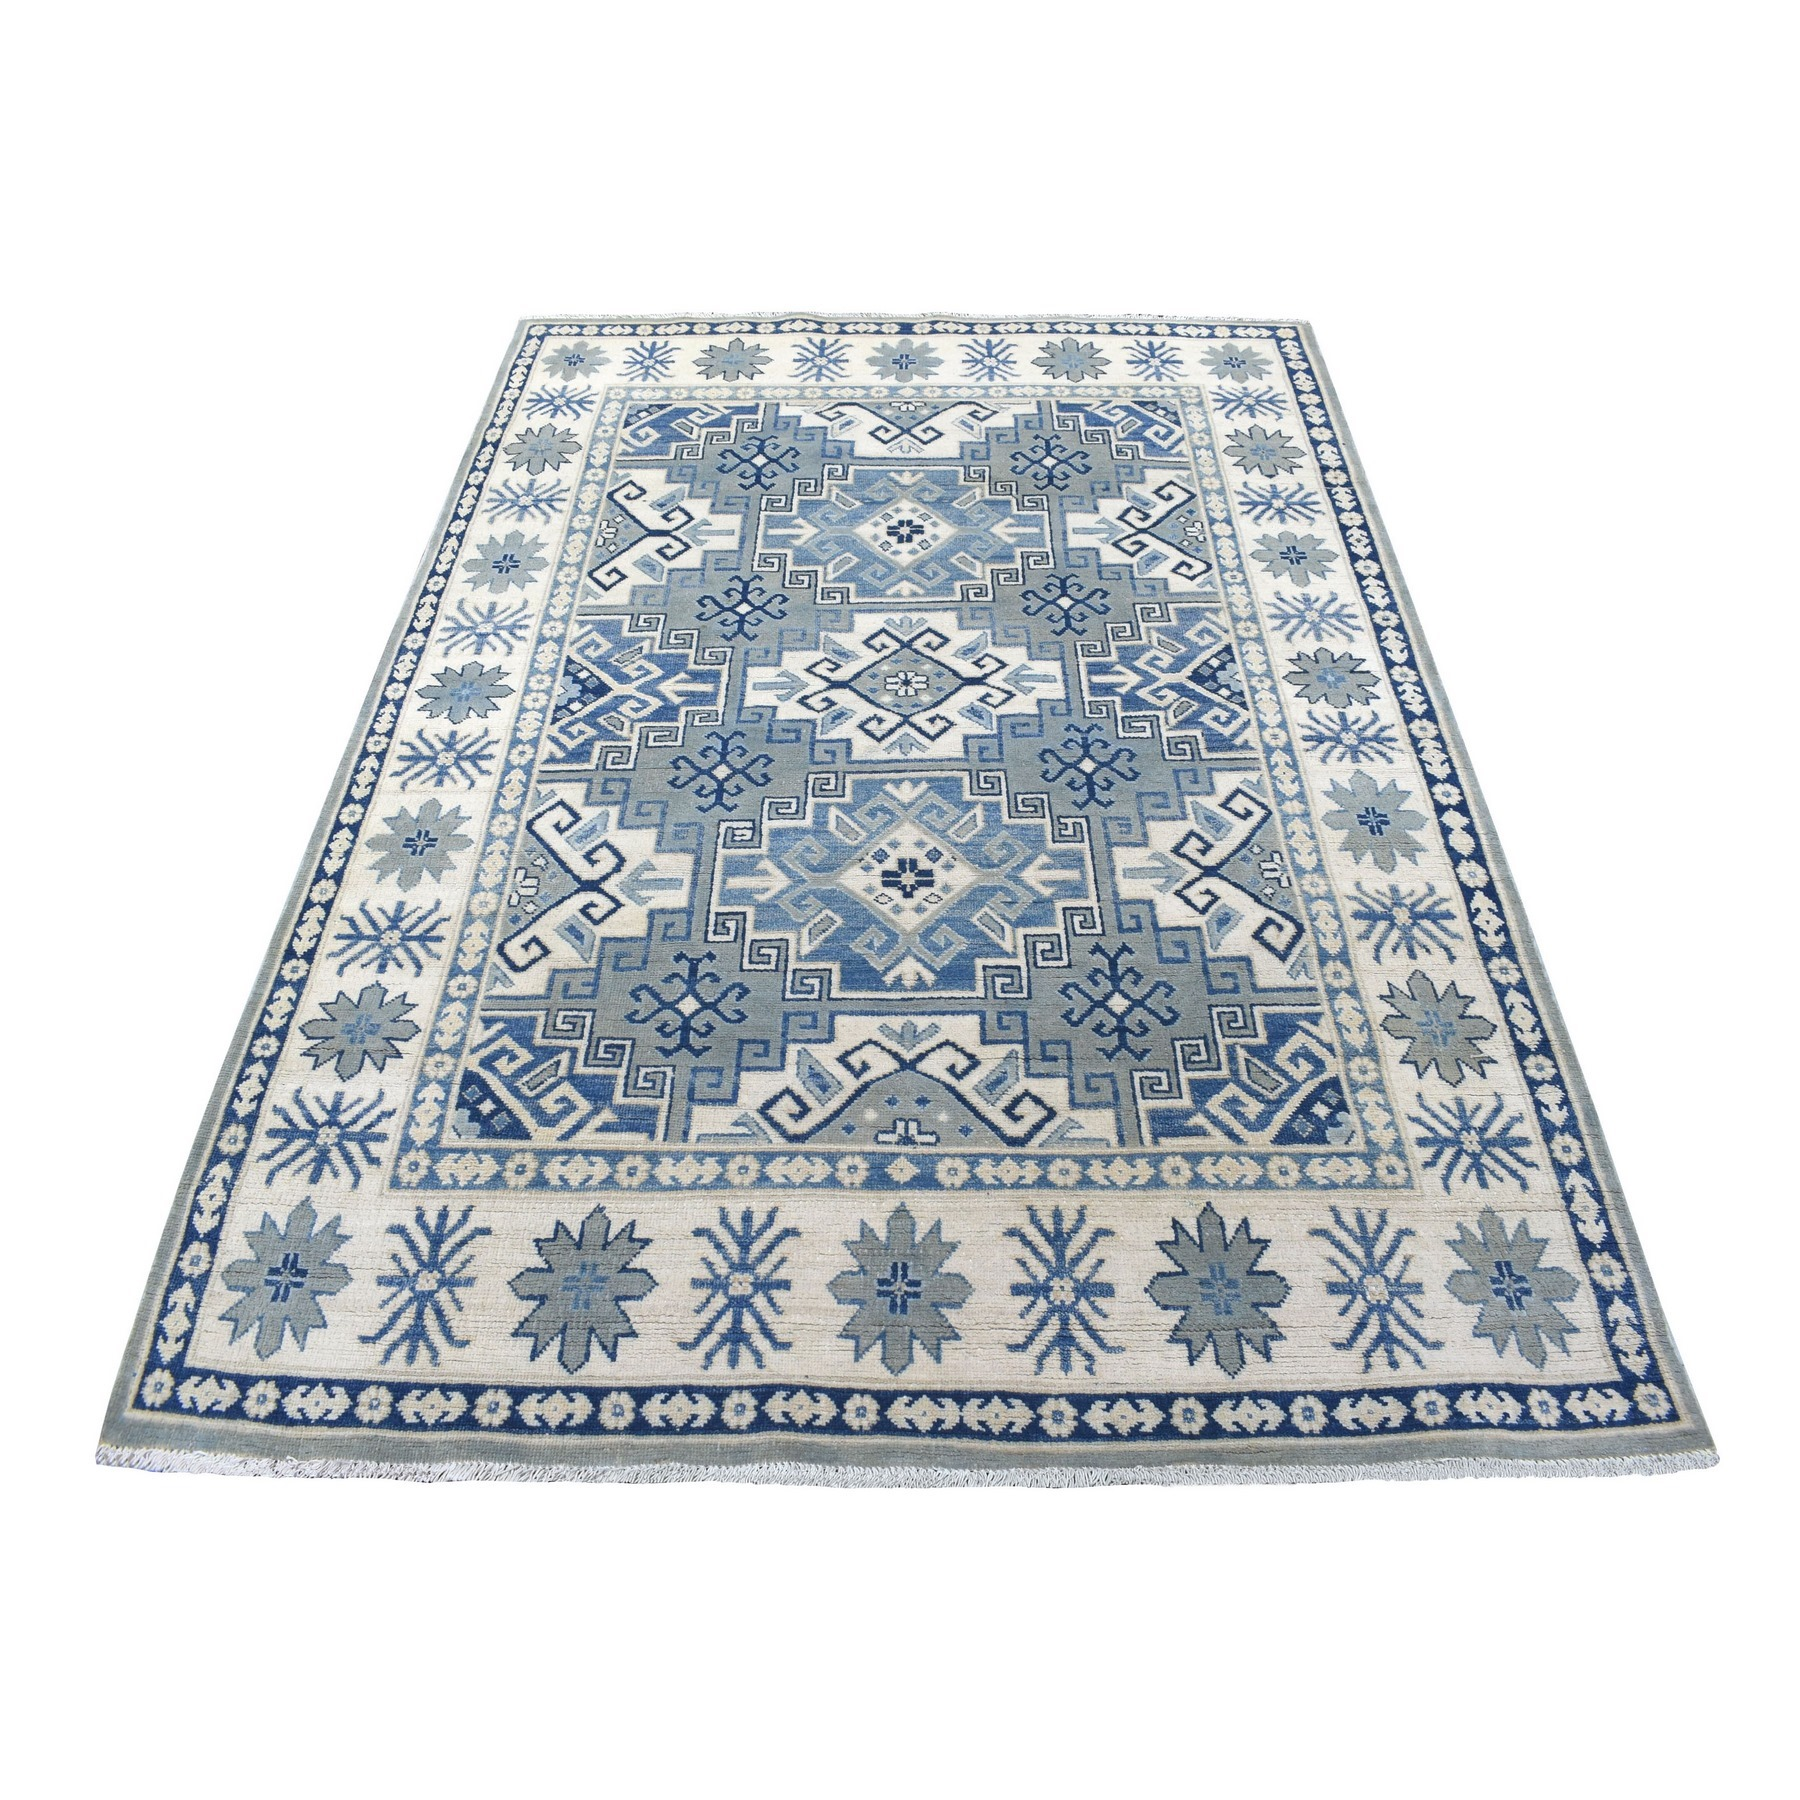 "5'x6'10"" Gray Vintage Look Kazak Geometric Design Hand Woven Natural Wool Oriental Rug"